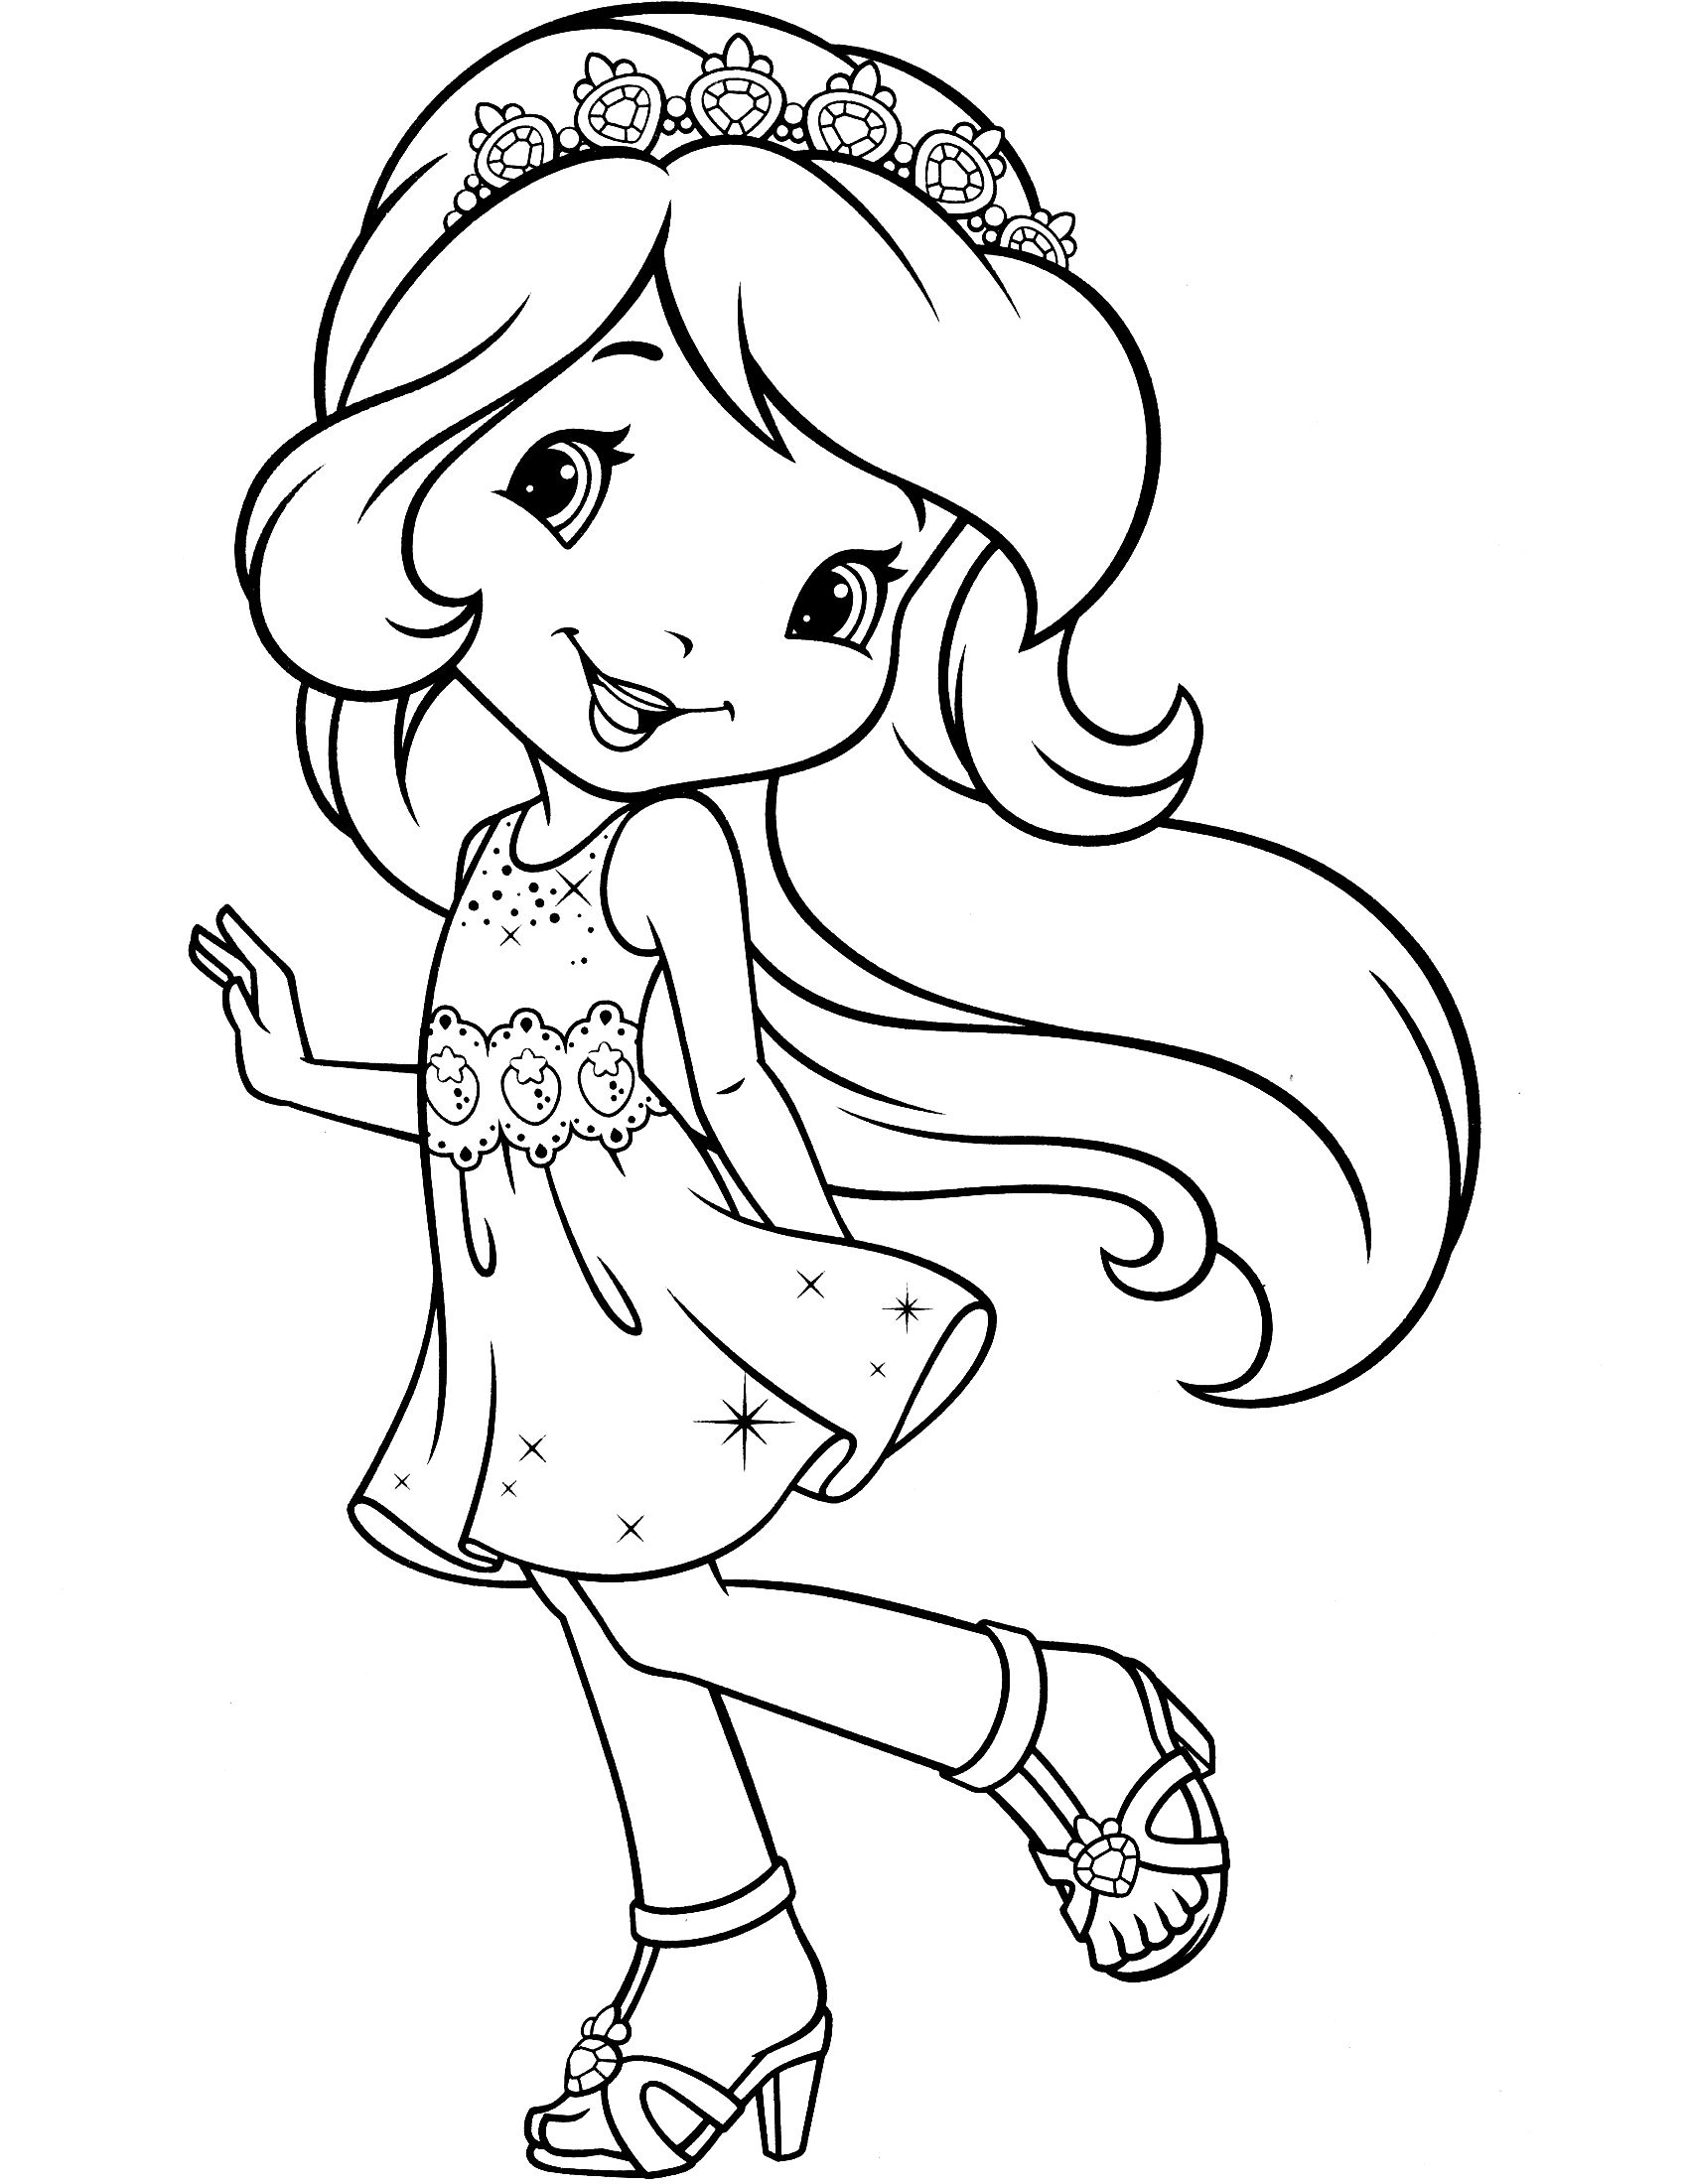 plum pudding strawberry shortcake coloring pages 1334 best images about printables for bebe on pinterest pages strawberry plum pudding coloring shortcake